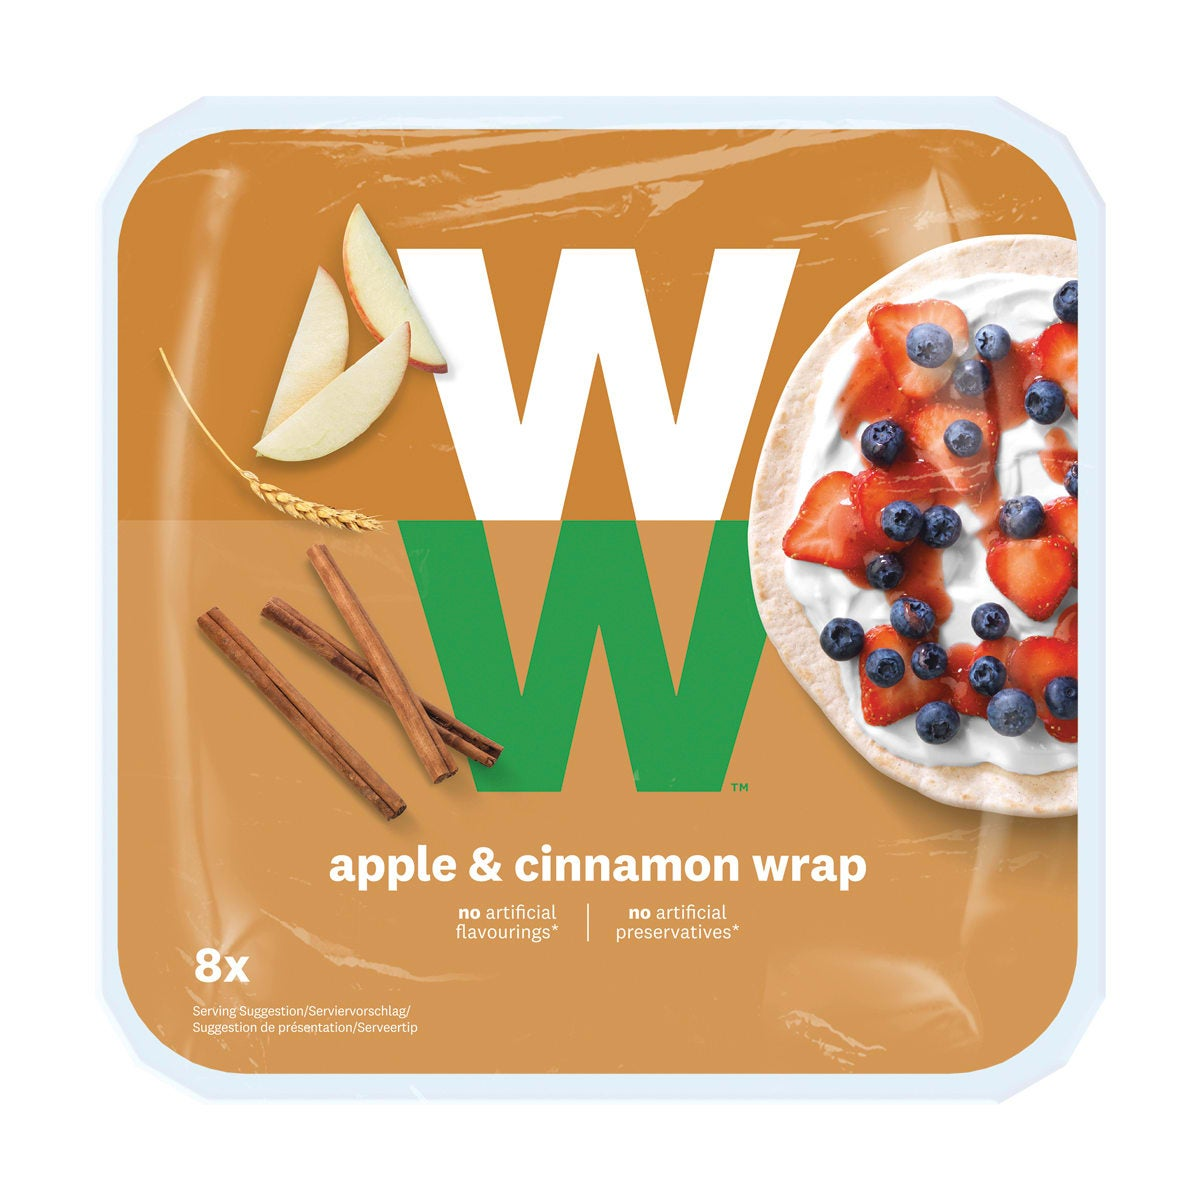 WW Apple & Cinnamon Wrap, dried apple pieces and cinnamon, alternative to bread, 3 SmartPoints values per wrap, suitable for vegans